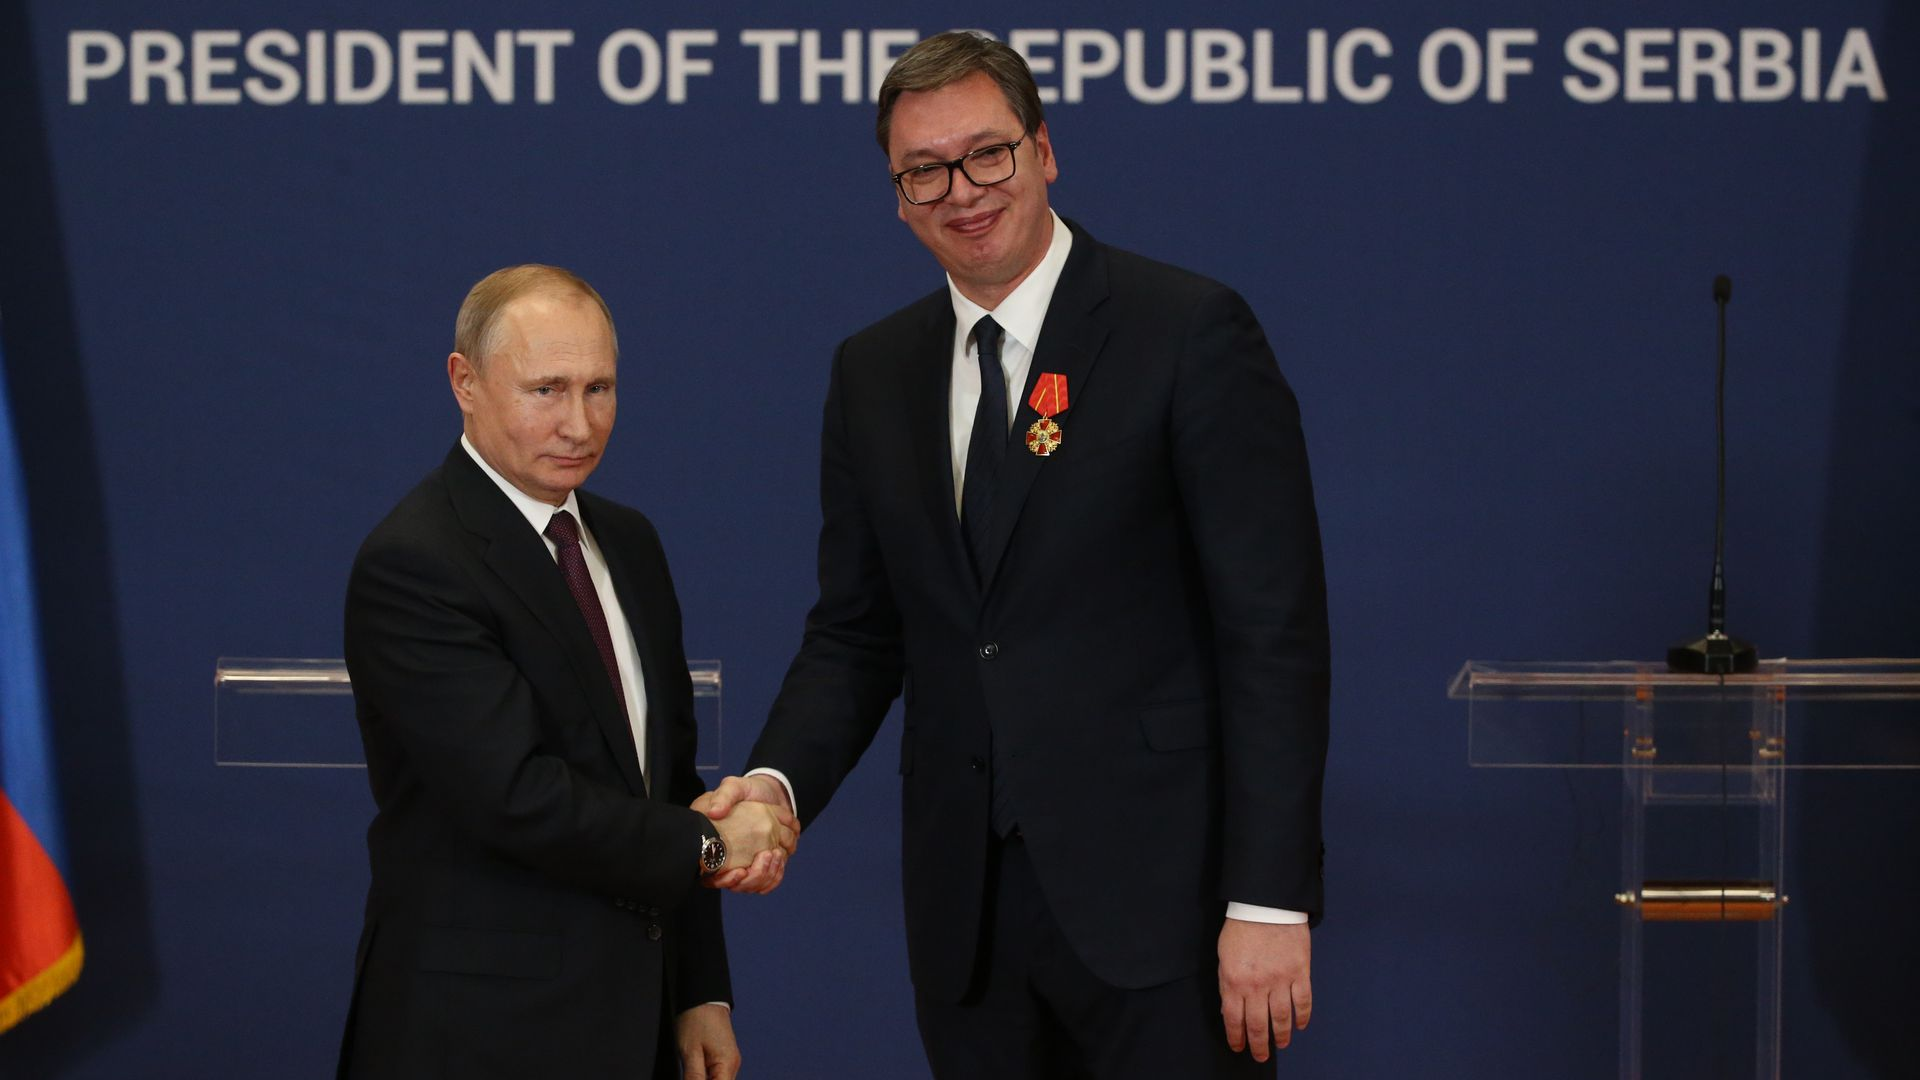 Russian President Vladimir Putin shakes hands with Serbian President Aleksandar Vucic during their meeting at the Presidential Administration on January 17, 2018 in Belgrade, Serbia.